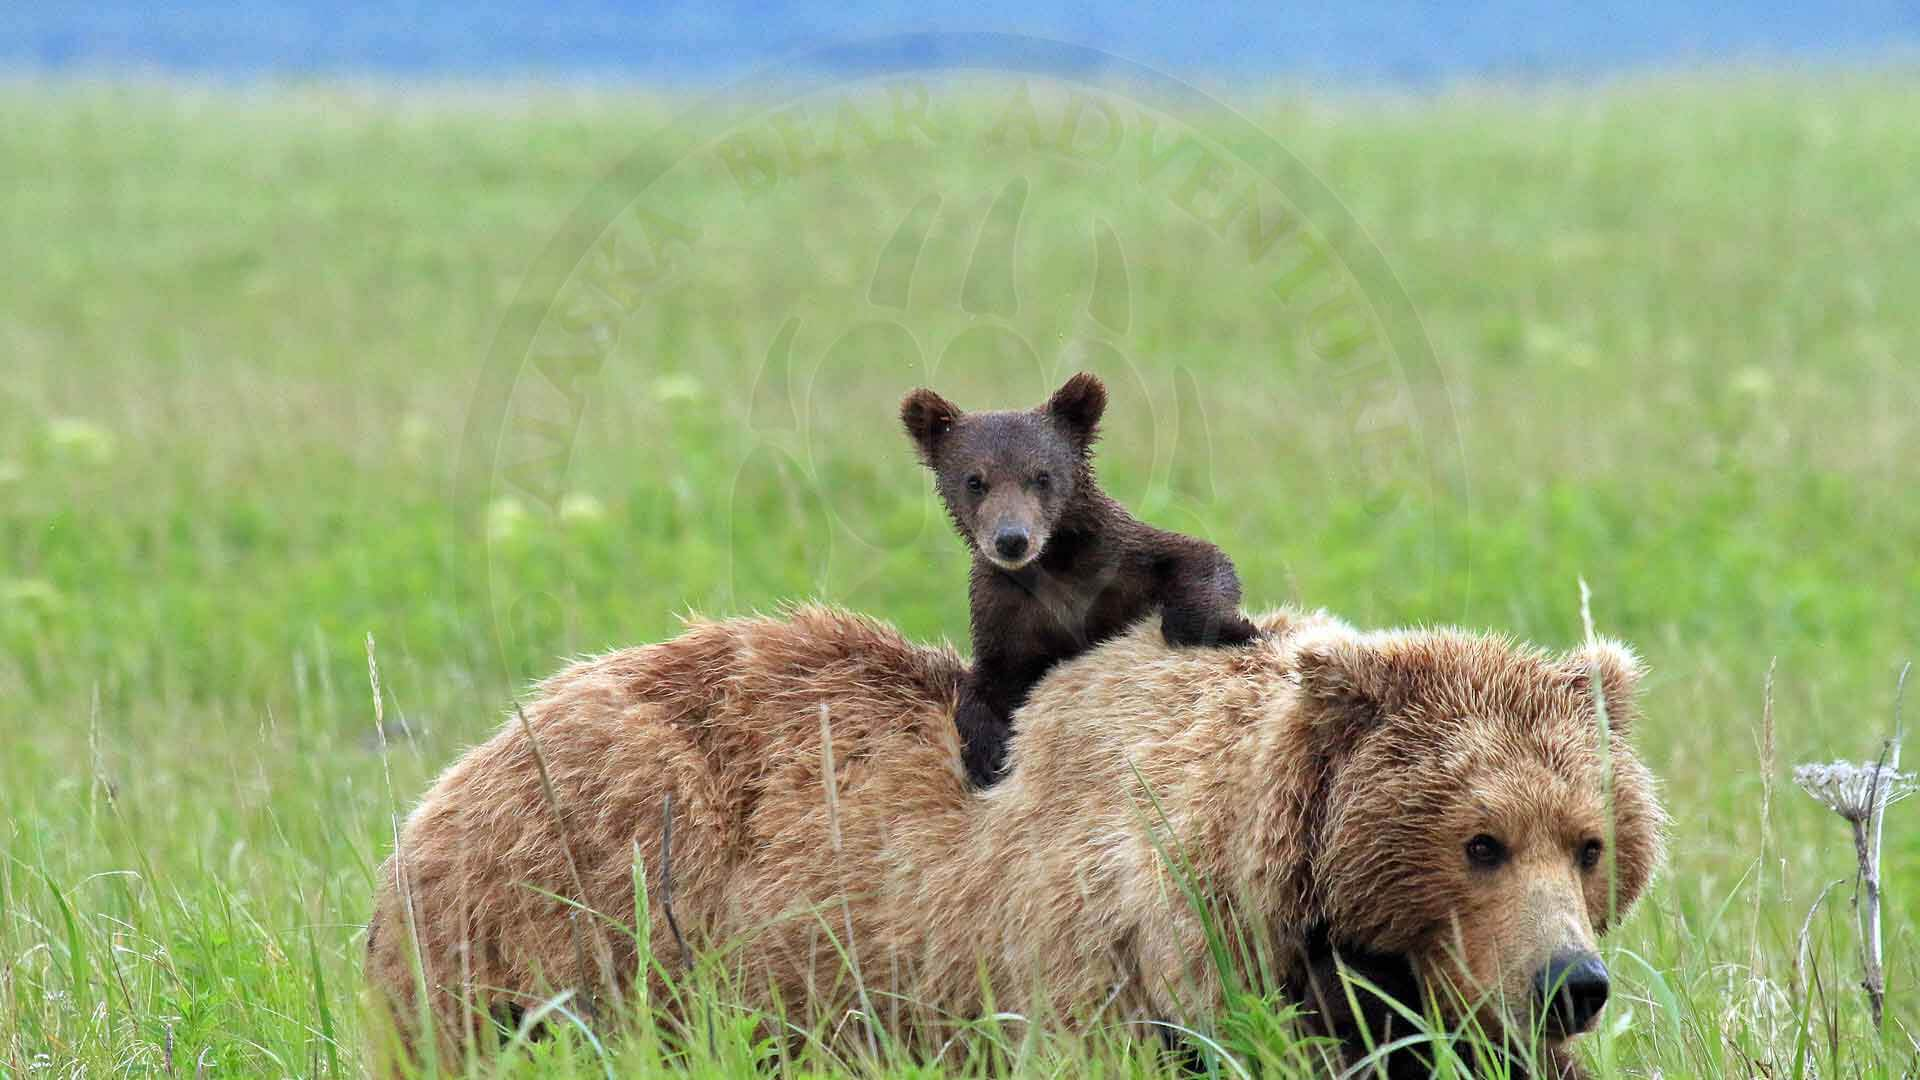 Mama Brown Bear With Cub in Alaska